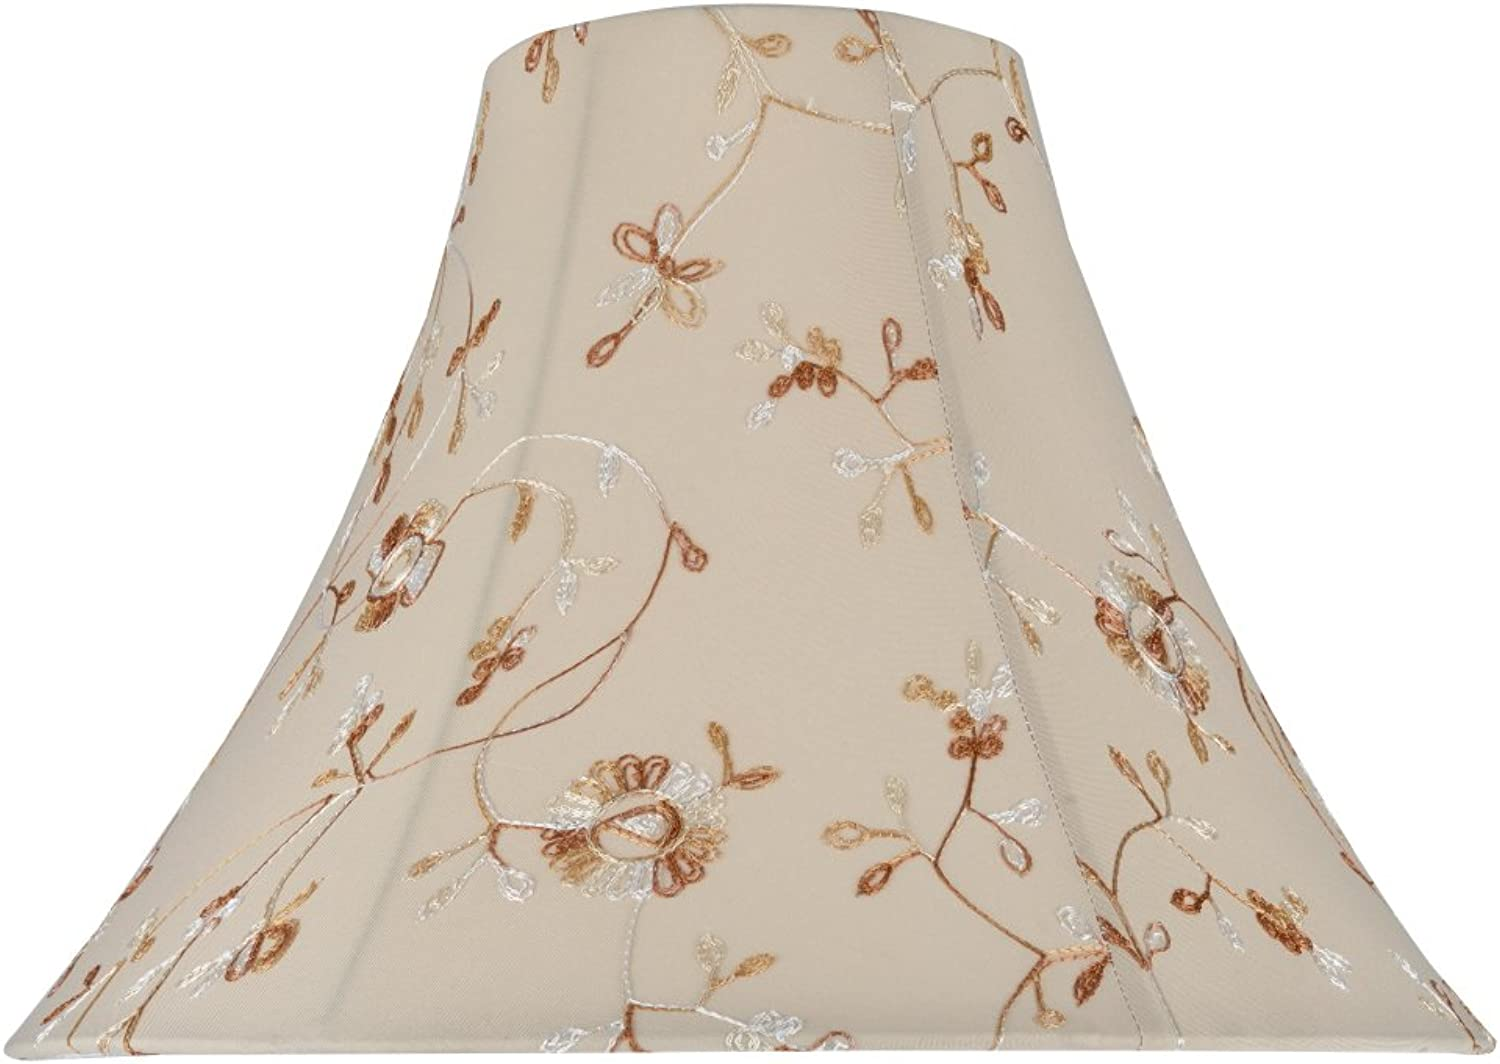 Aspen Creative 30082 Transitional Bell Shape Spider Construction Lamp Shade in Apricot, 16  wide (6  x 16  x 12 )